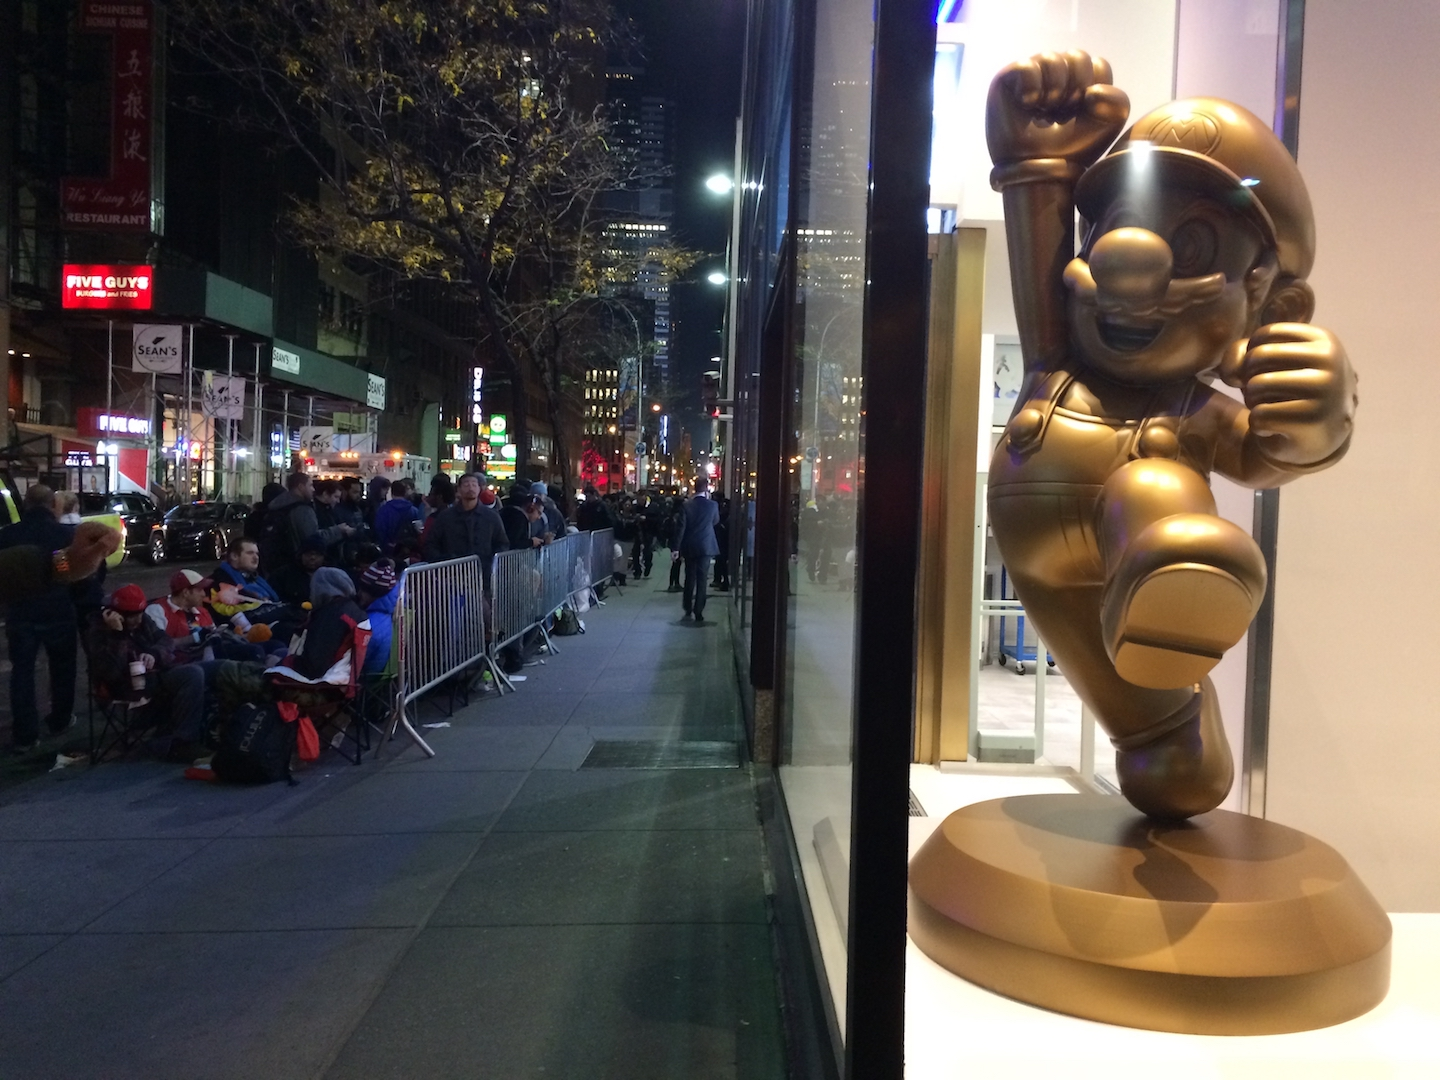 A lineup in front of the Nintendo NYC Store, with a golden-coloured Mario statue in the shop's window.